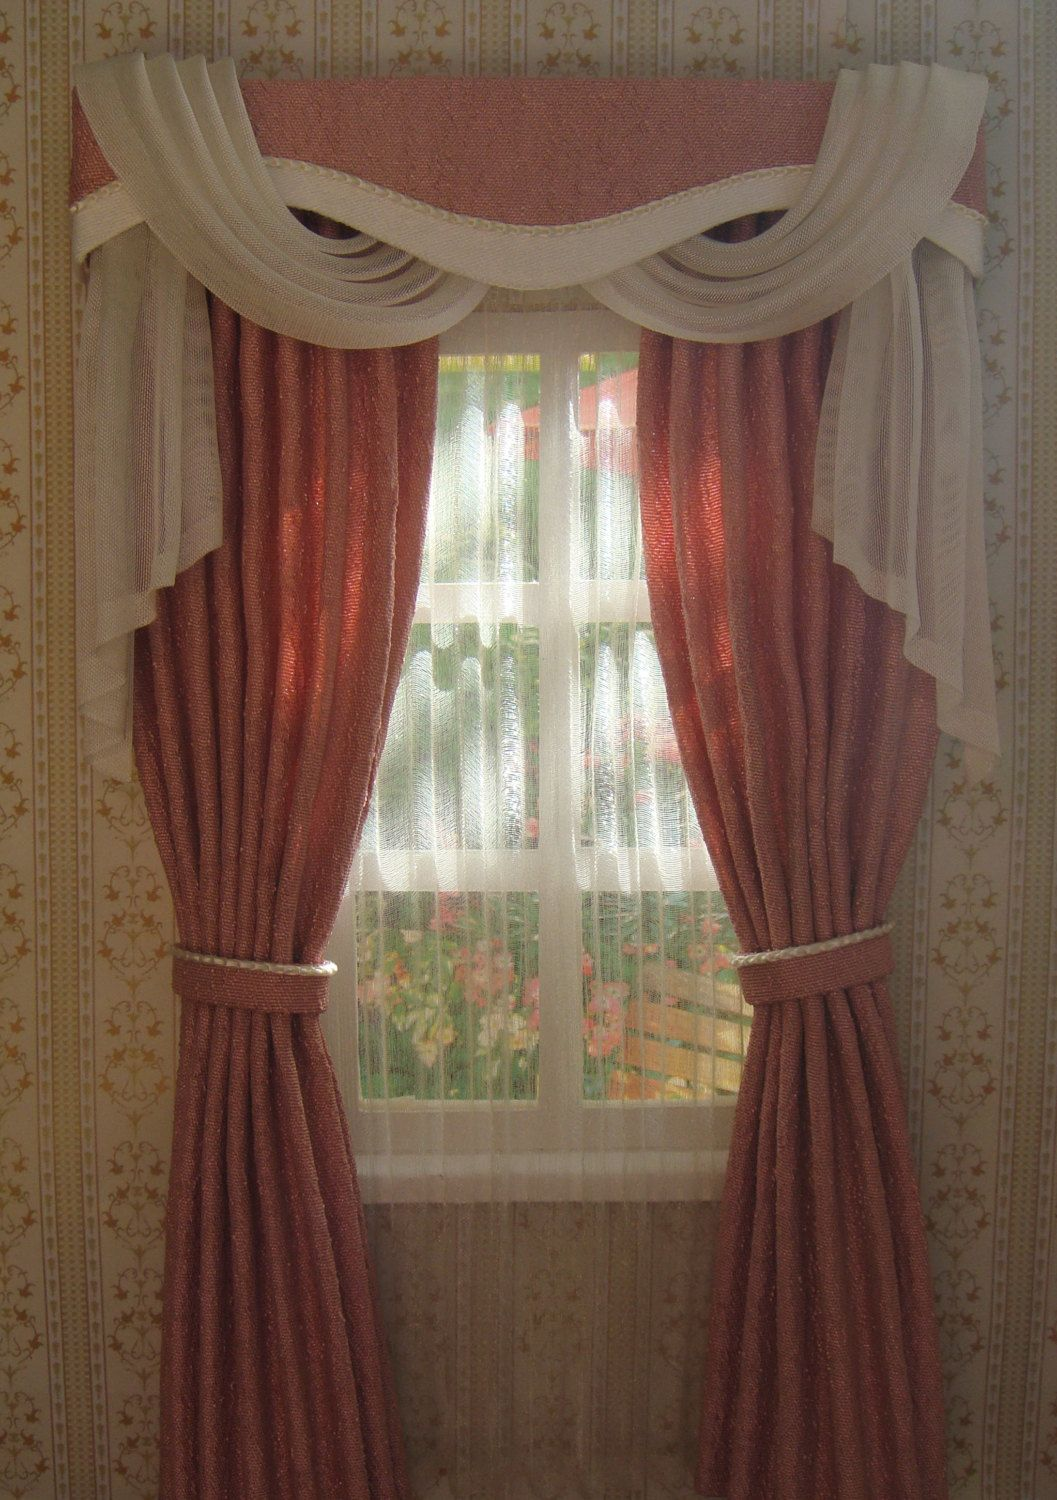 Miniature 1 12 Dollhouse Curtains On Order By Tanyashevtsova